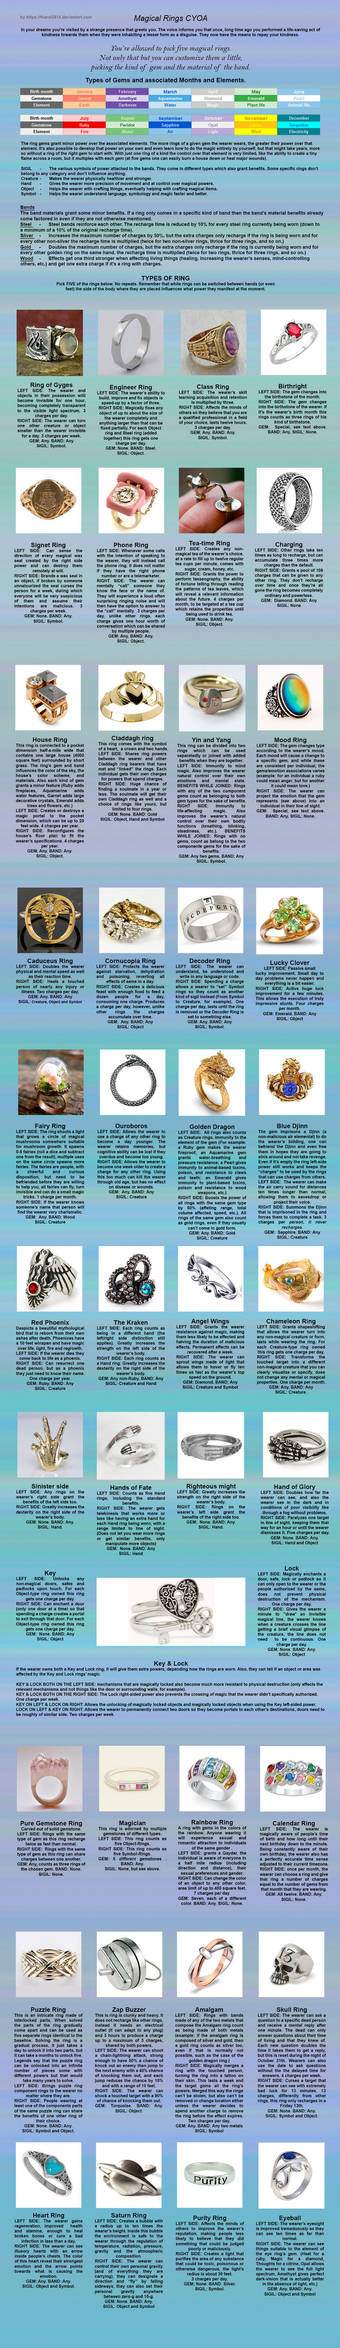 Magical Rings CYOA by tharal2814